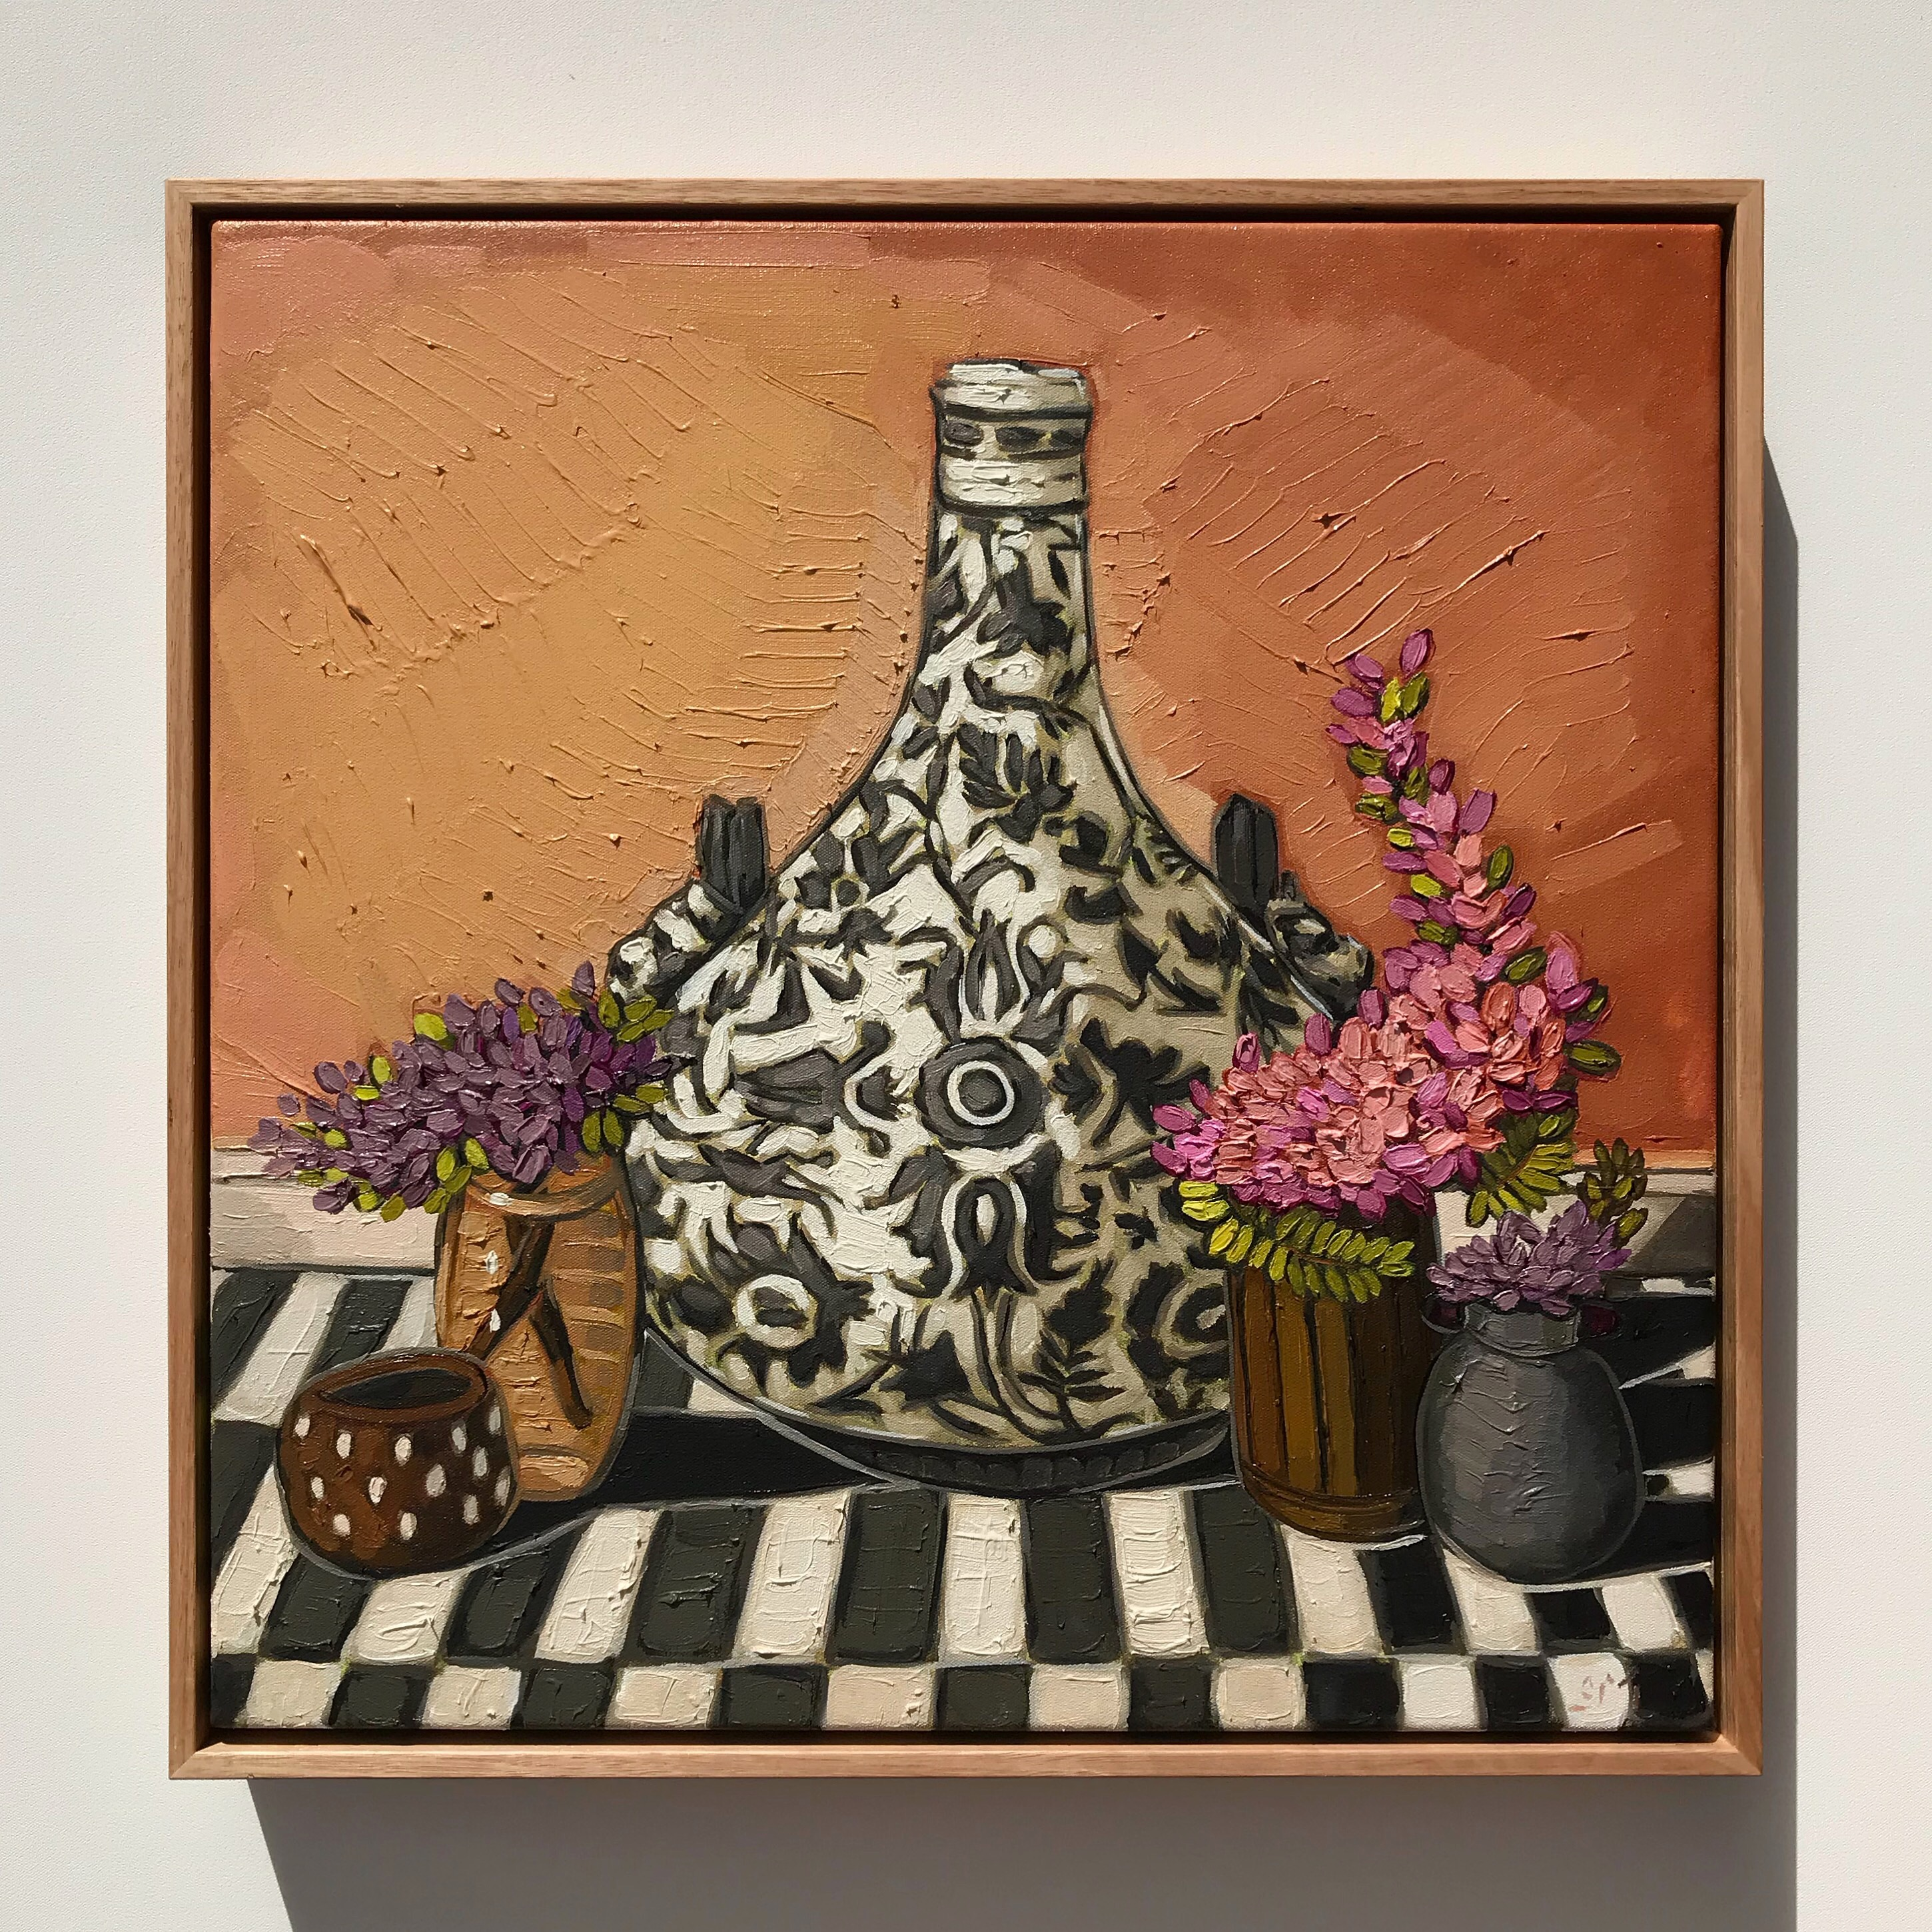 'Getty Bougainvillea & Ceramic'47x47